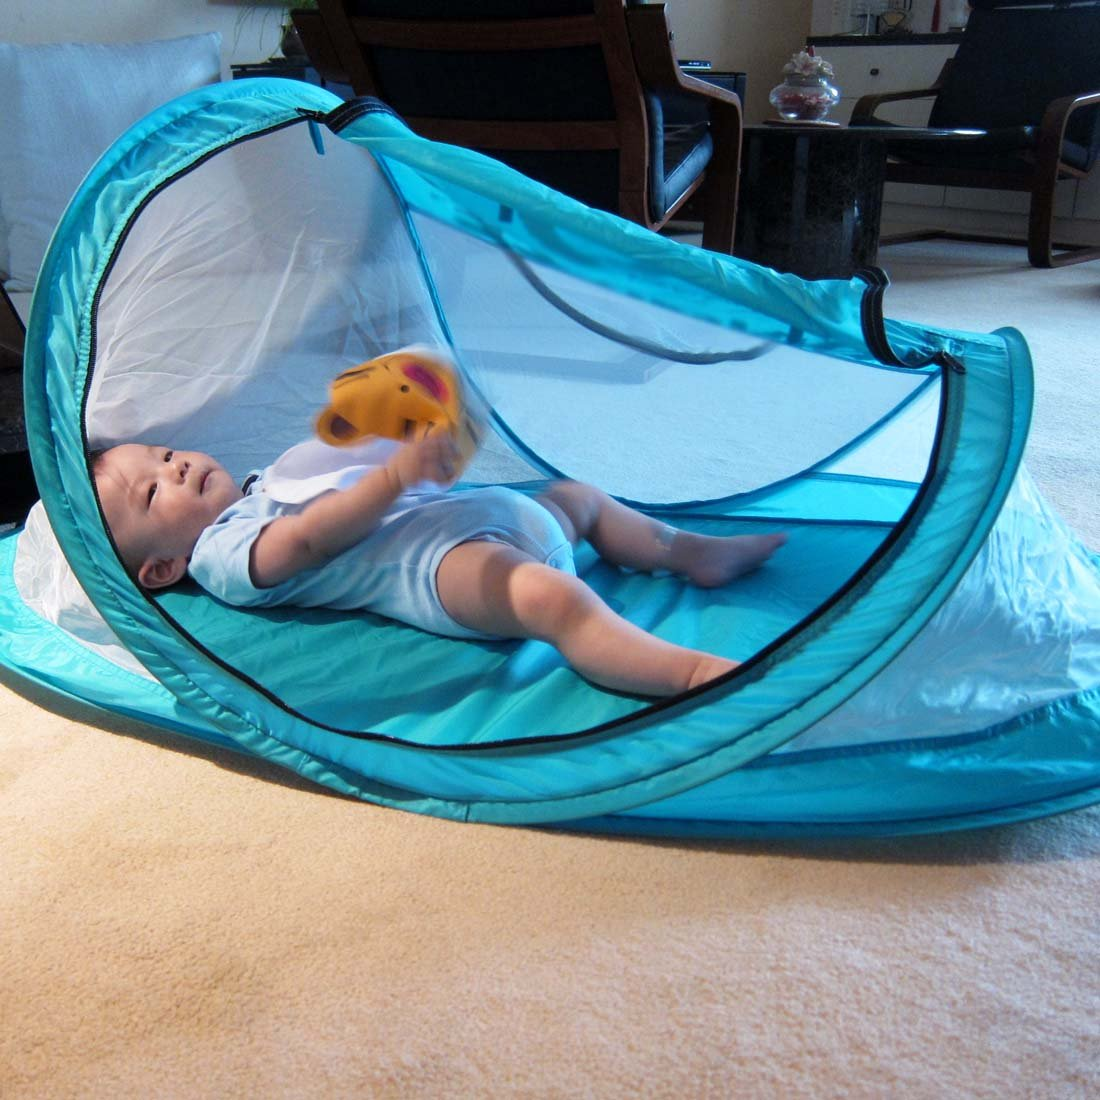 Amazon.com  kilofly Original Instant Pop Up Portable Travel Baby Beach Tent + 2 Stake Pegs  Infant And Toddler Travel Beds  Baby & Amazon.com : kilofly Original Instant Pop Up Portable Travel Baby ...